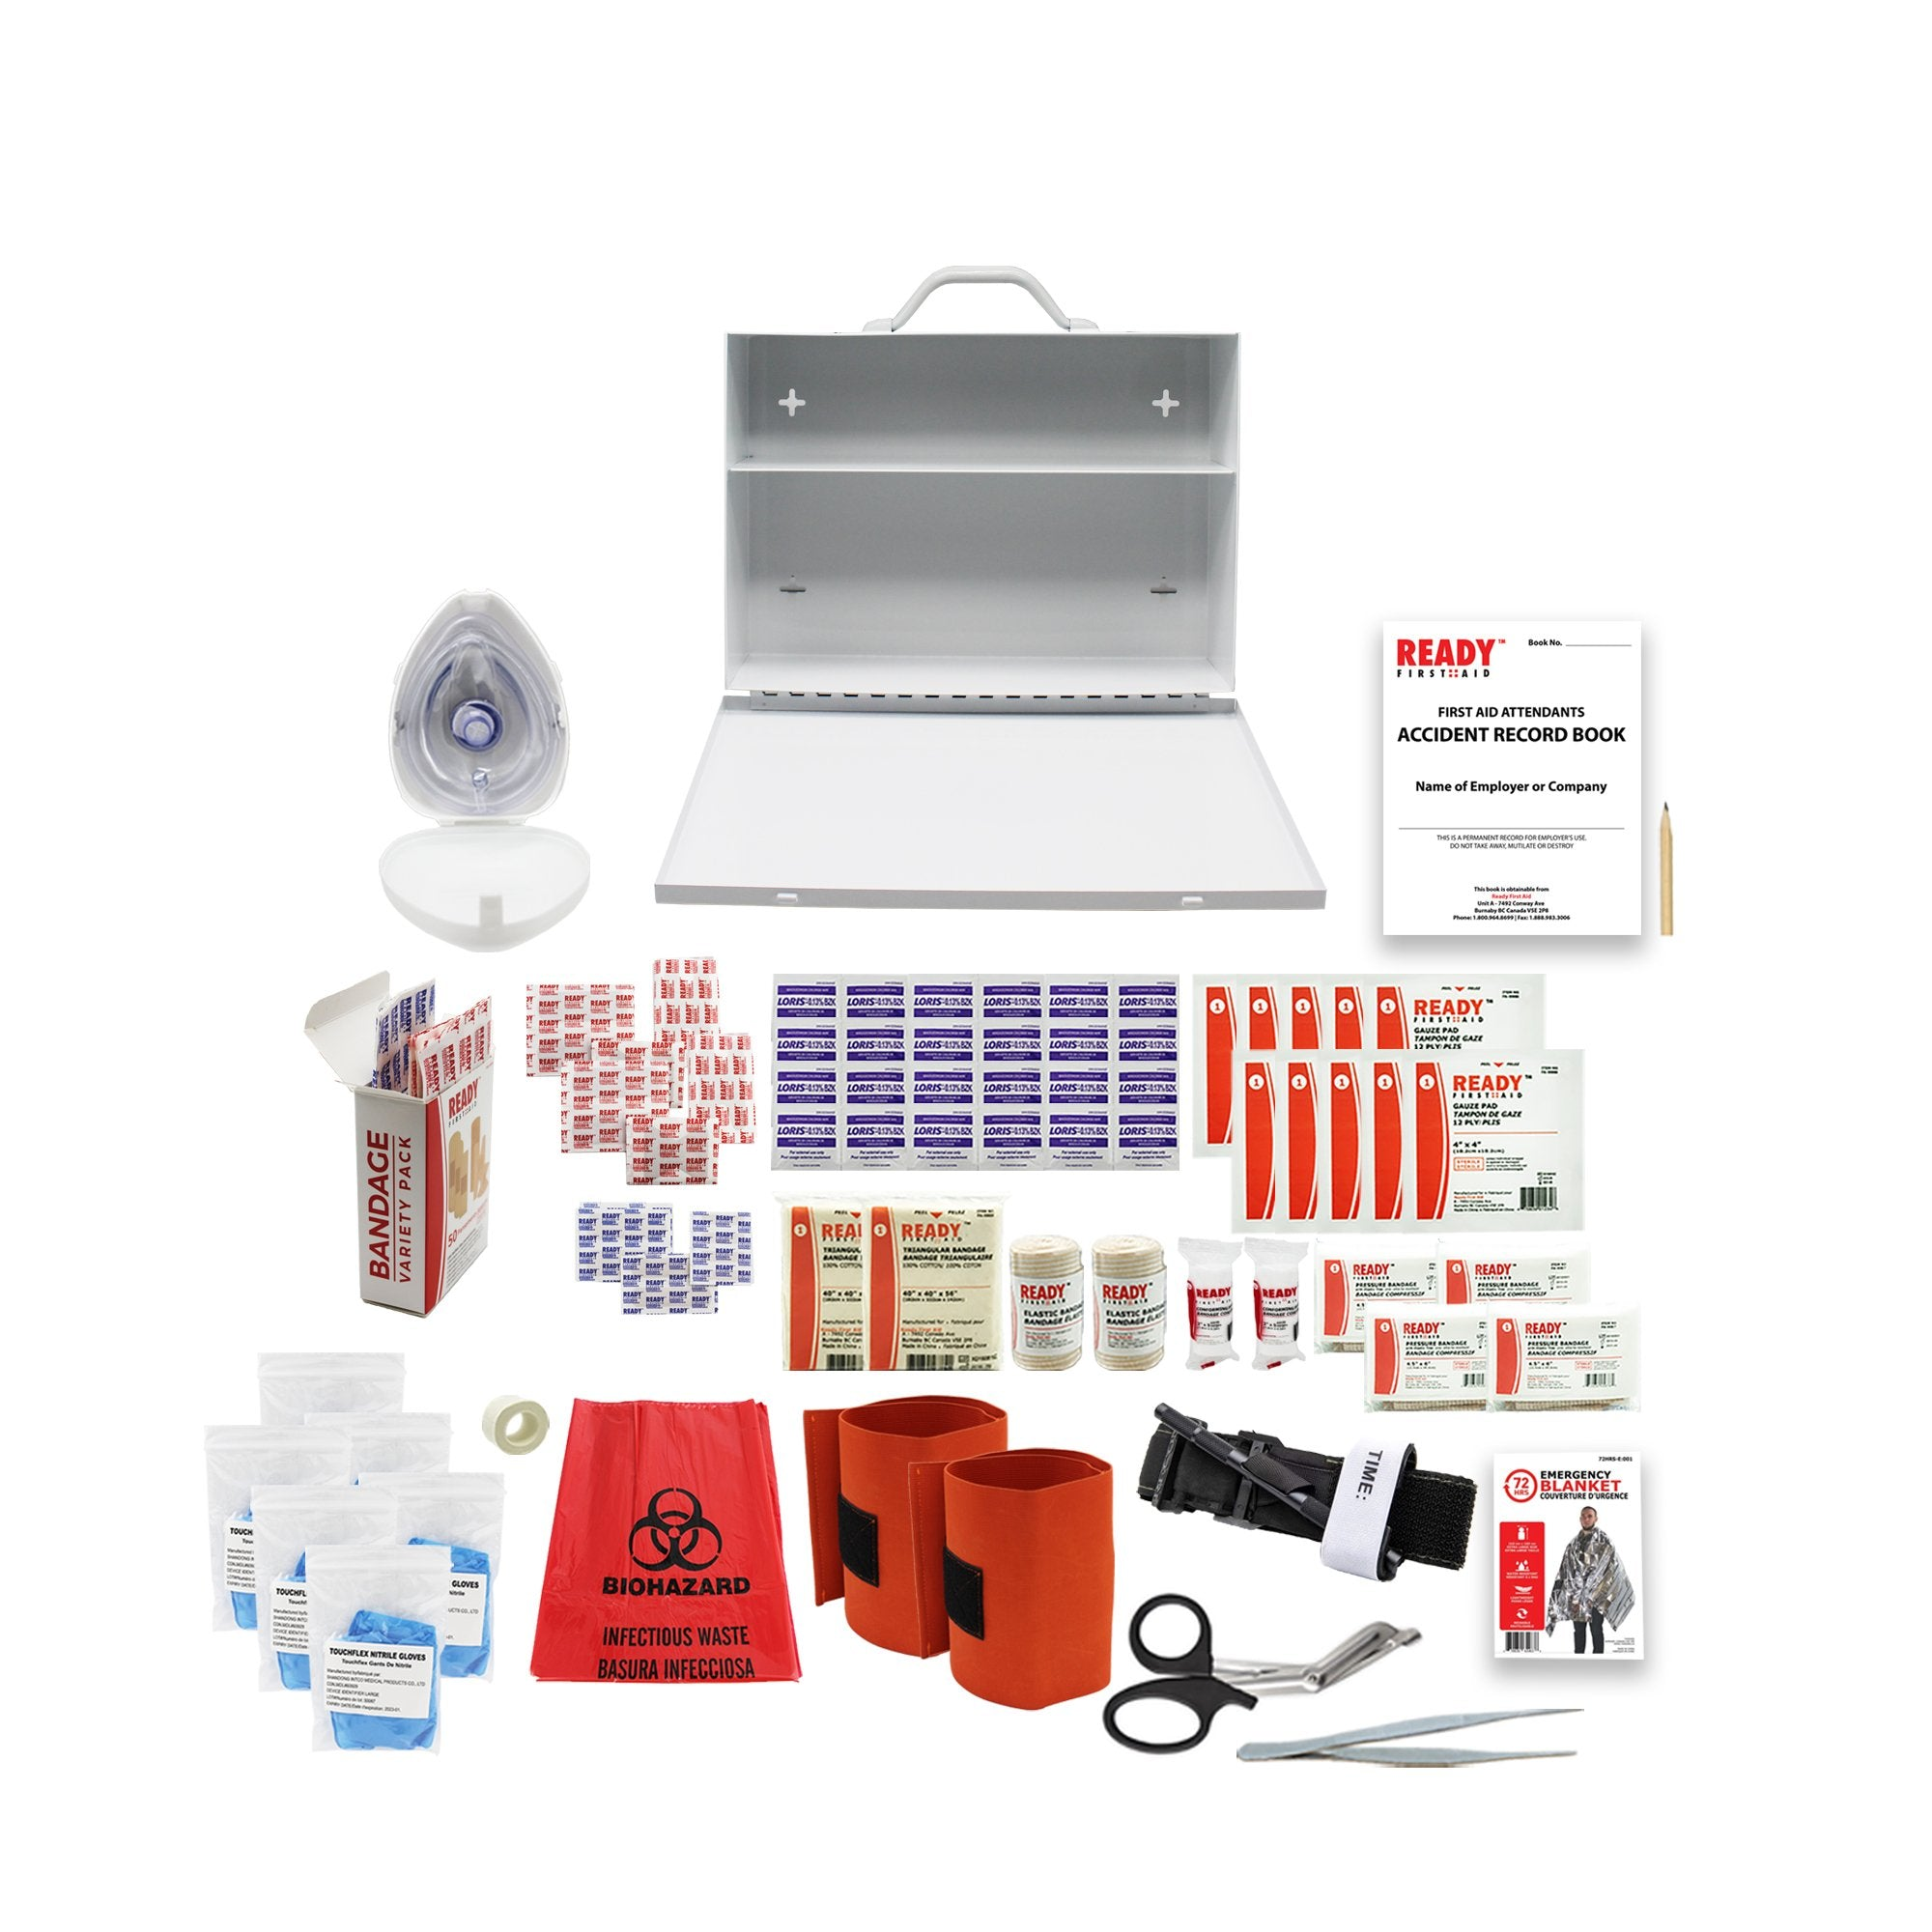 WCB Level 1 Metal Case First Aid Kit - Ready First Aid